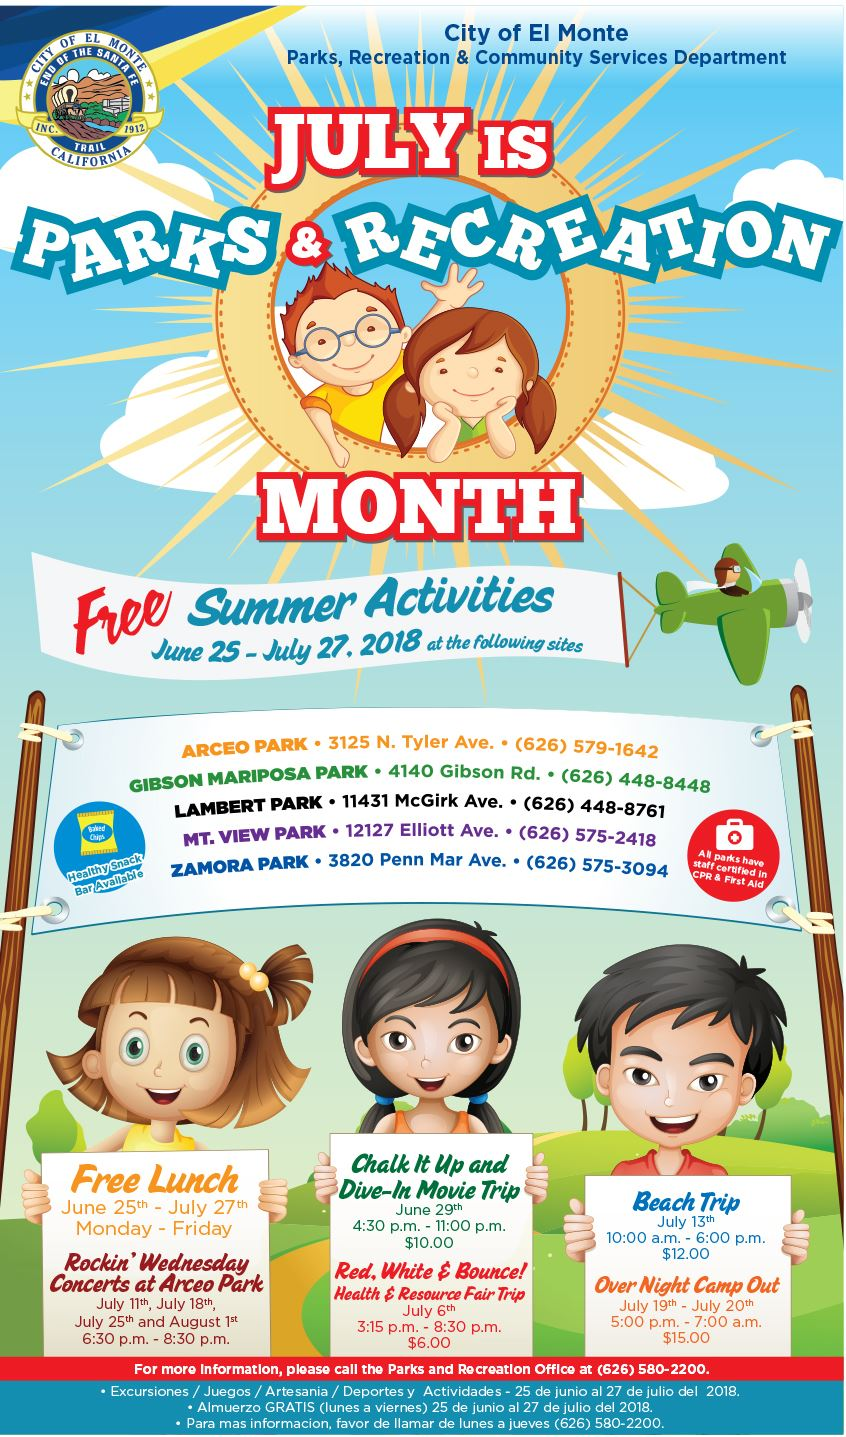 2018_july_is_parks_and_rec_month_park flyer_04